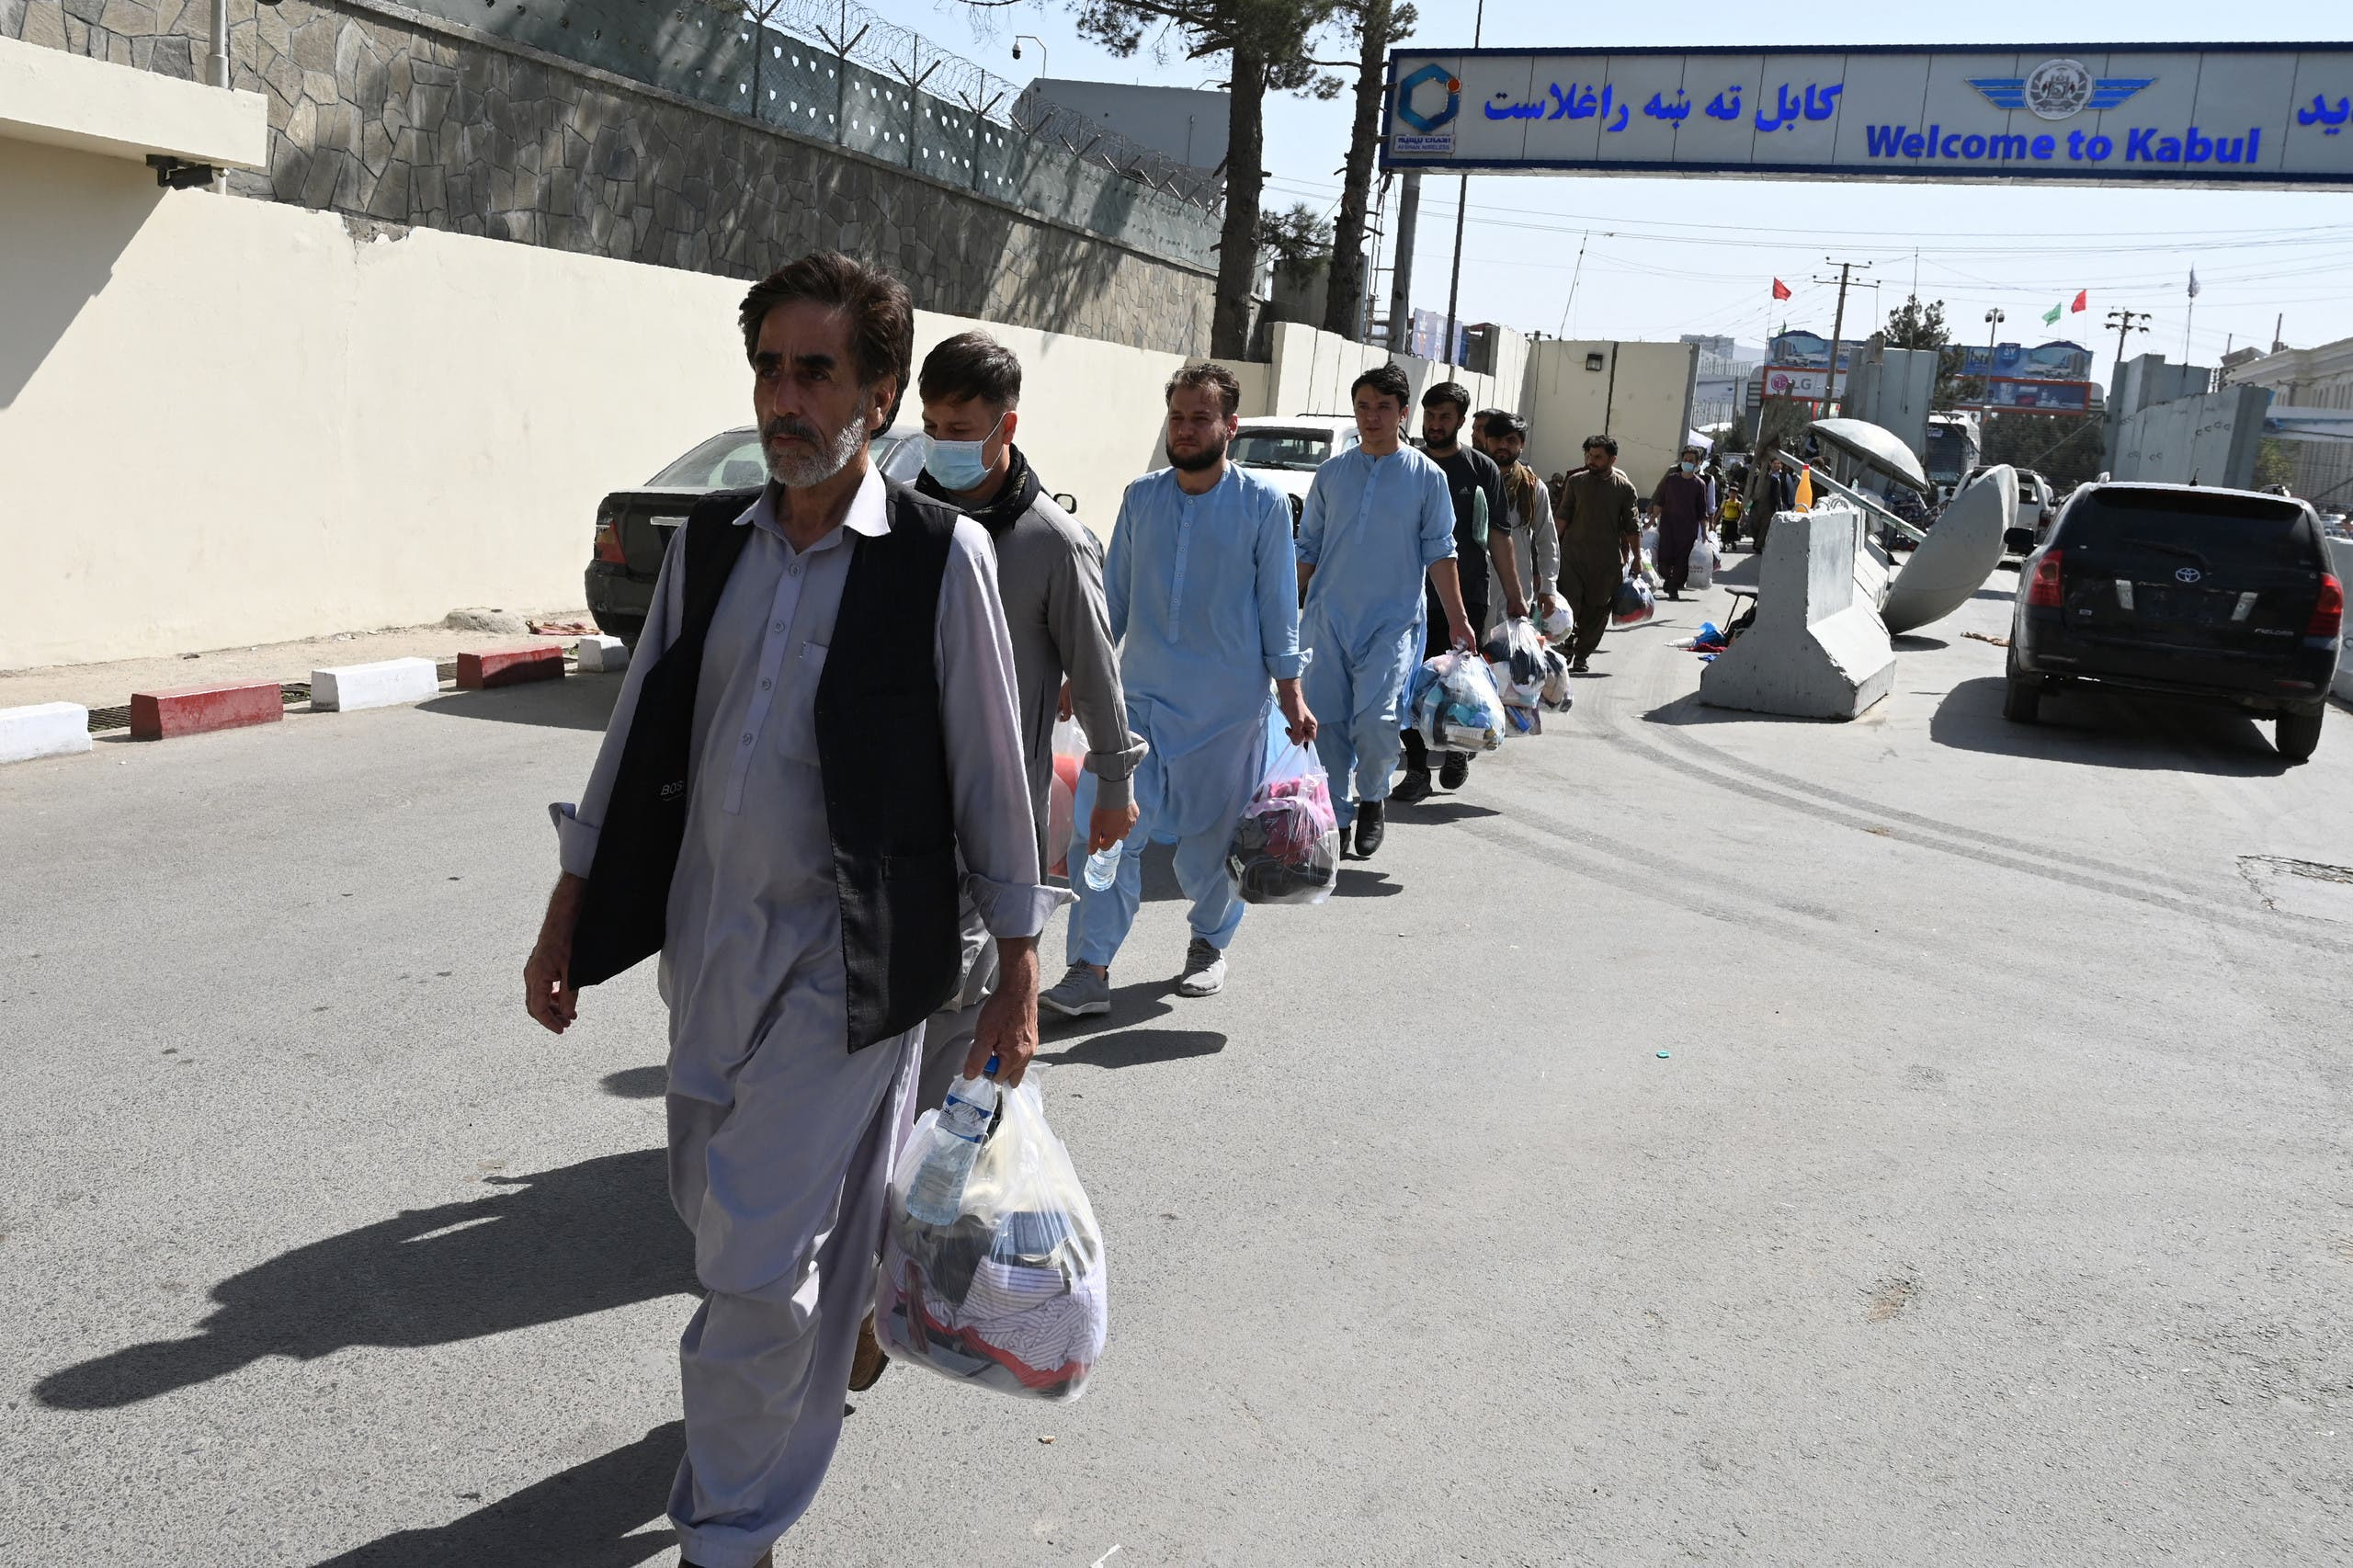 Afghans hoping to leave Afghanistan walk to the main entrance gate of Kabul airport in Kabul on August 28, 2021, following the Taliban stunning military takeover of Afghanistan. (AFP)